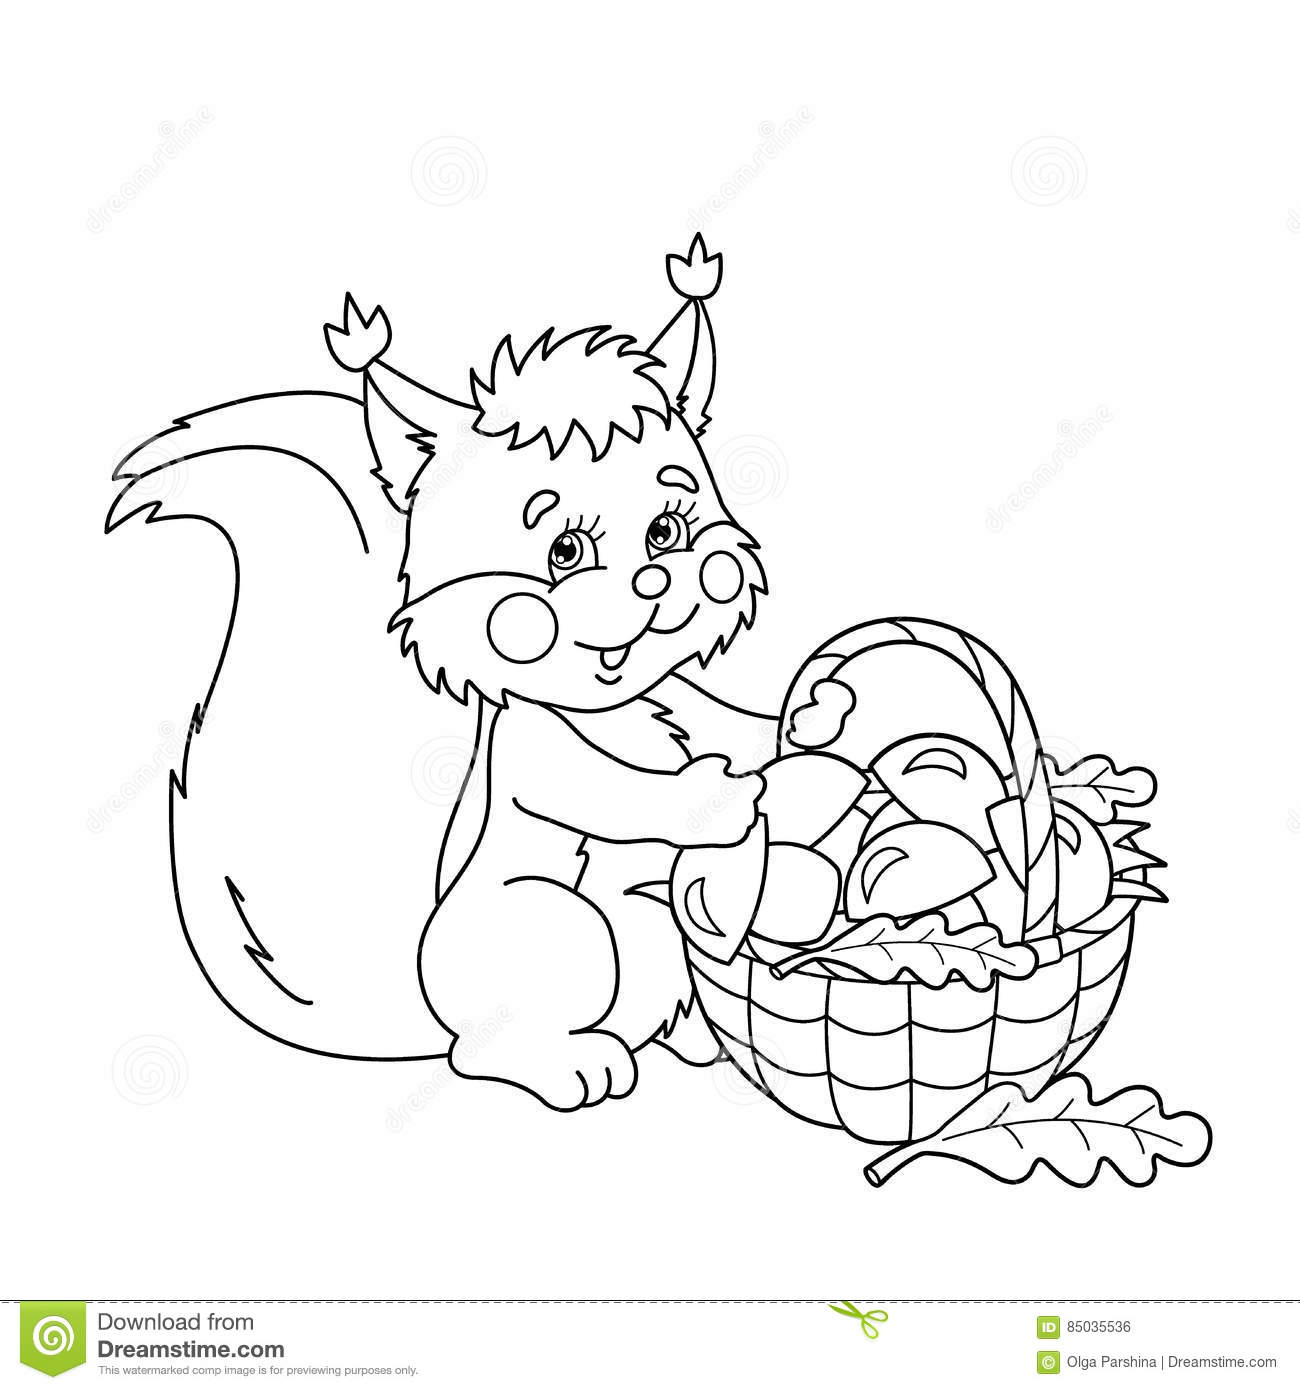 coloring page outline of basket of mushrooms summer gifts of